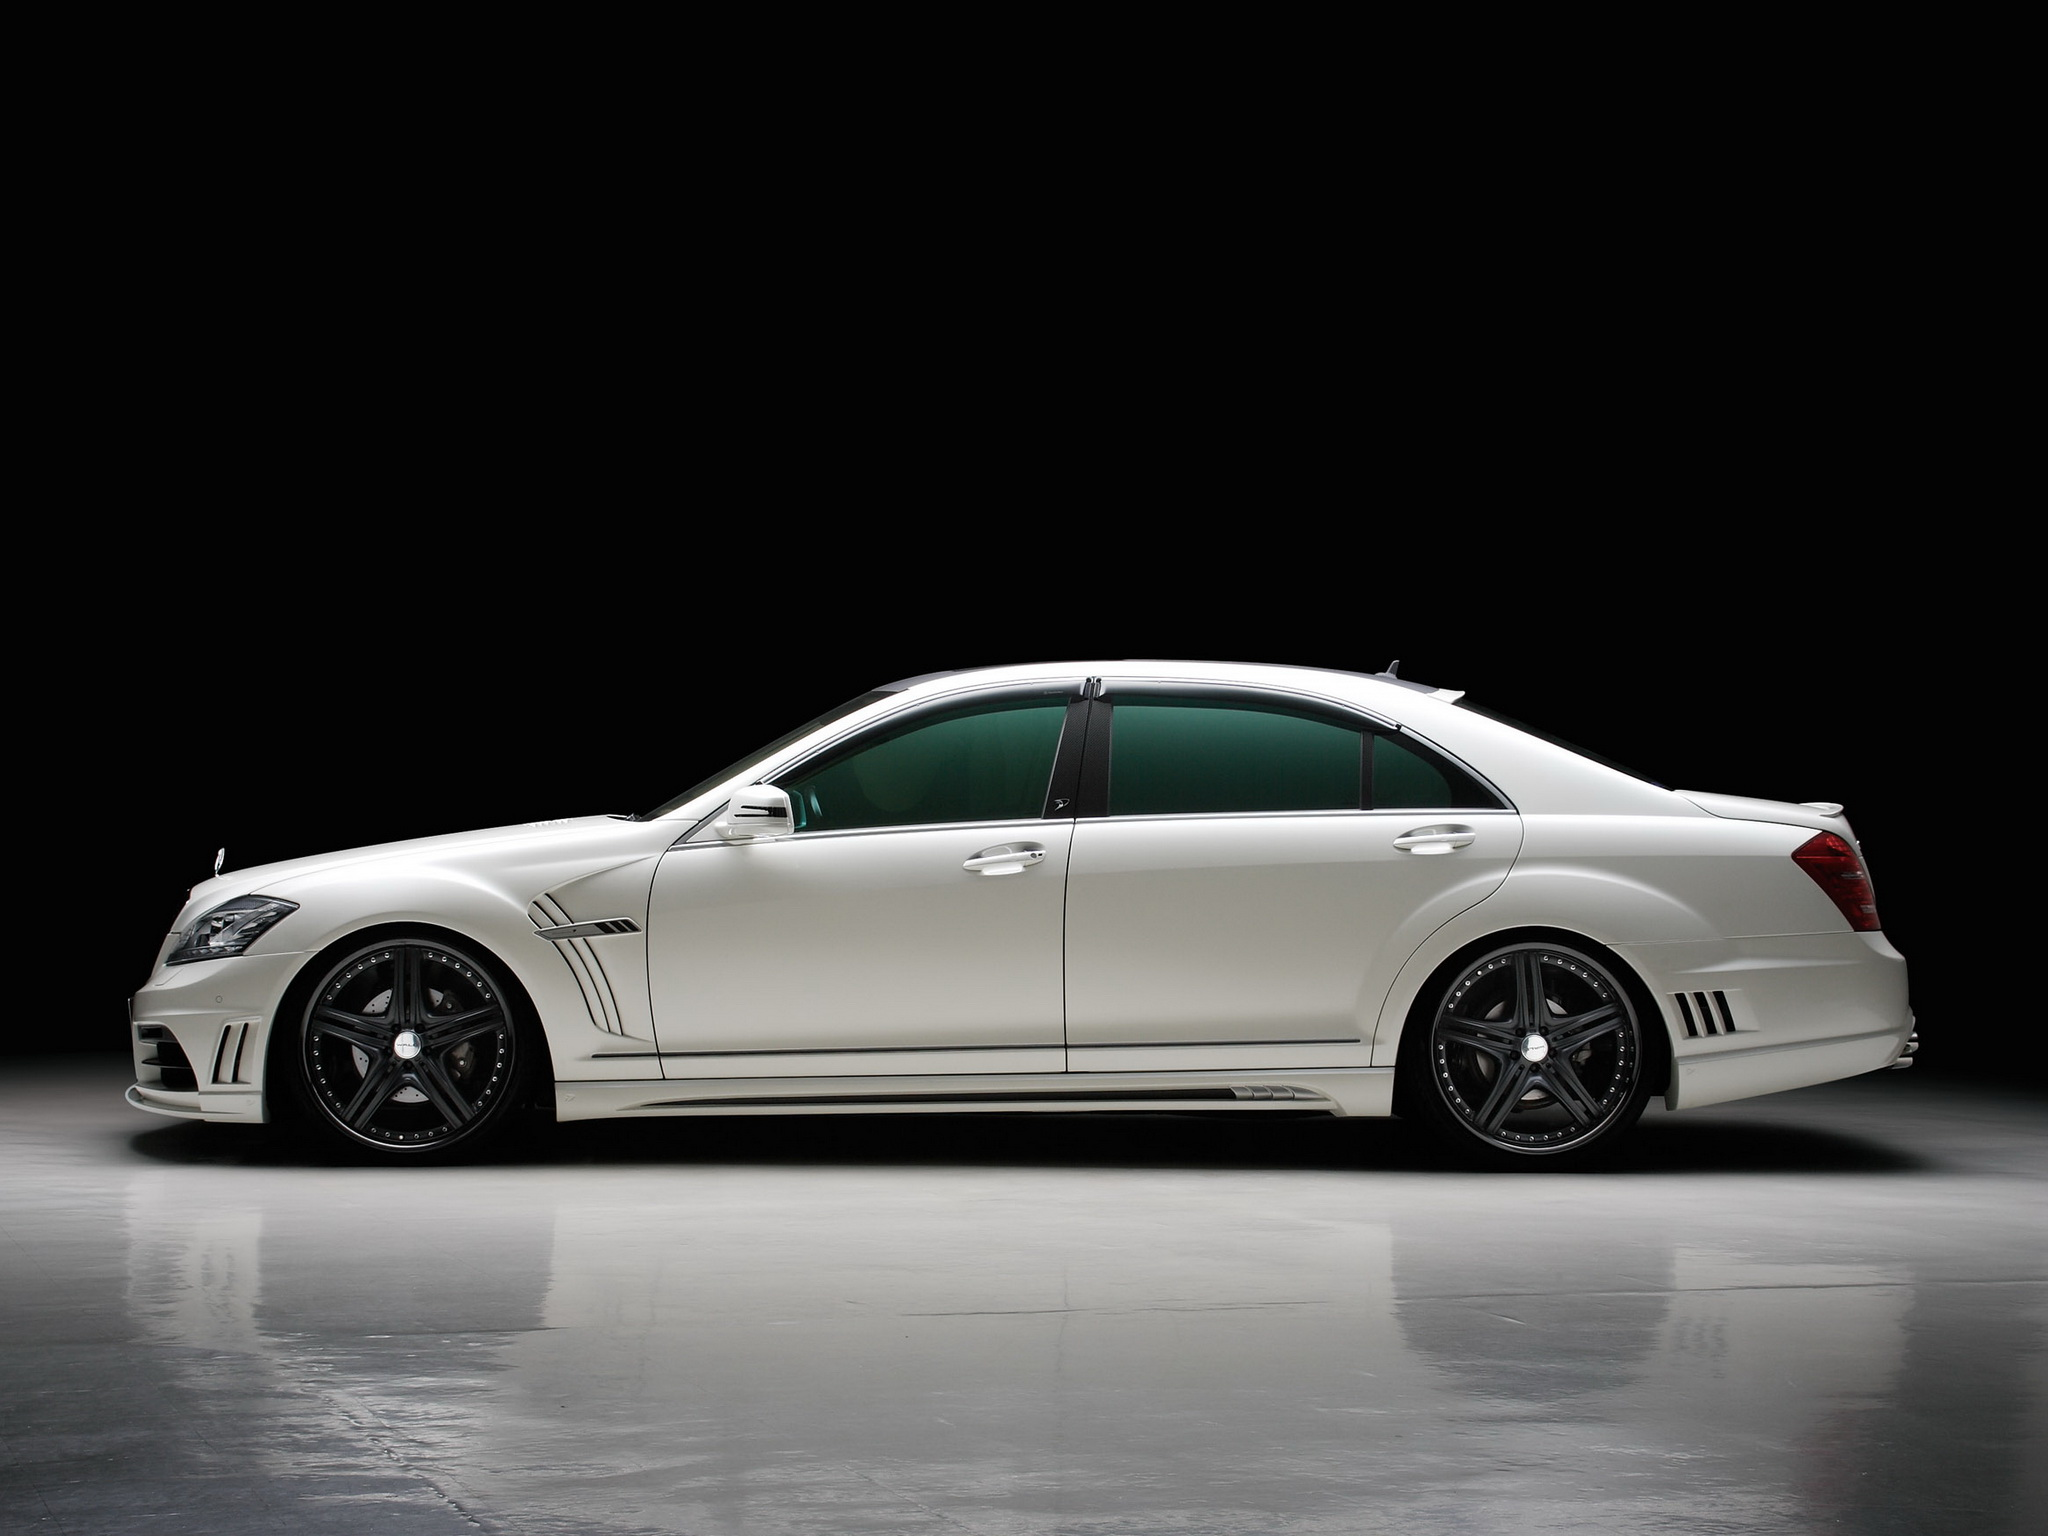 Amazing Mercedes-Benz S-Class Wallpaper   Full HD Pictures